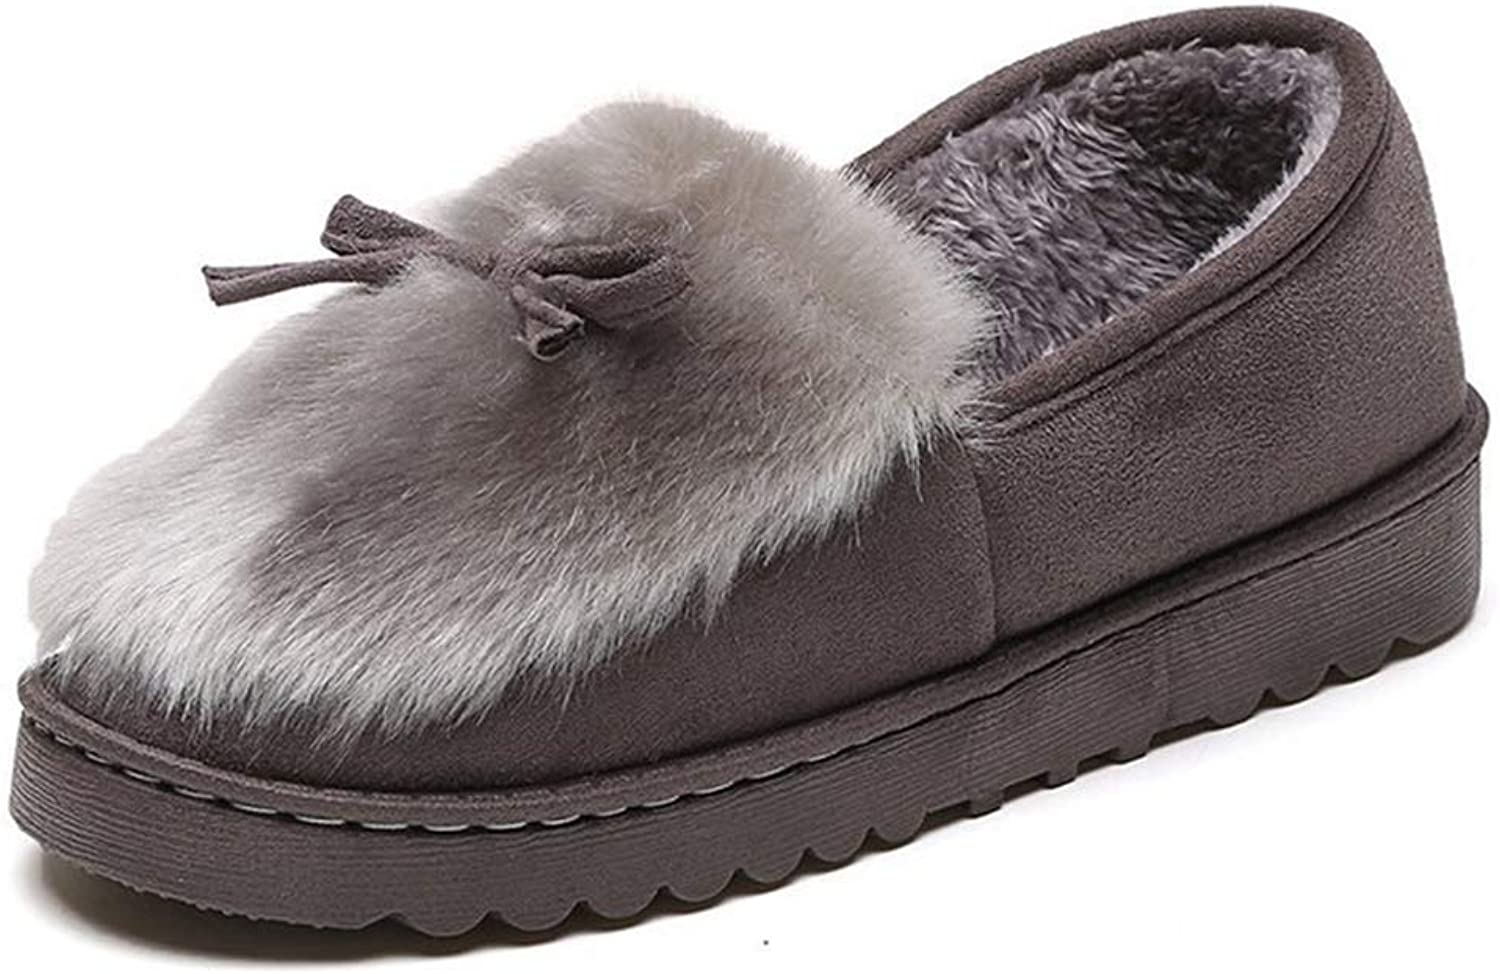 Nafanio Winter Plush Moccasin shoes Women Home Indoor with Fur Warm Female Ladies Cotton Women Warm Slippers